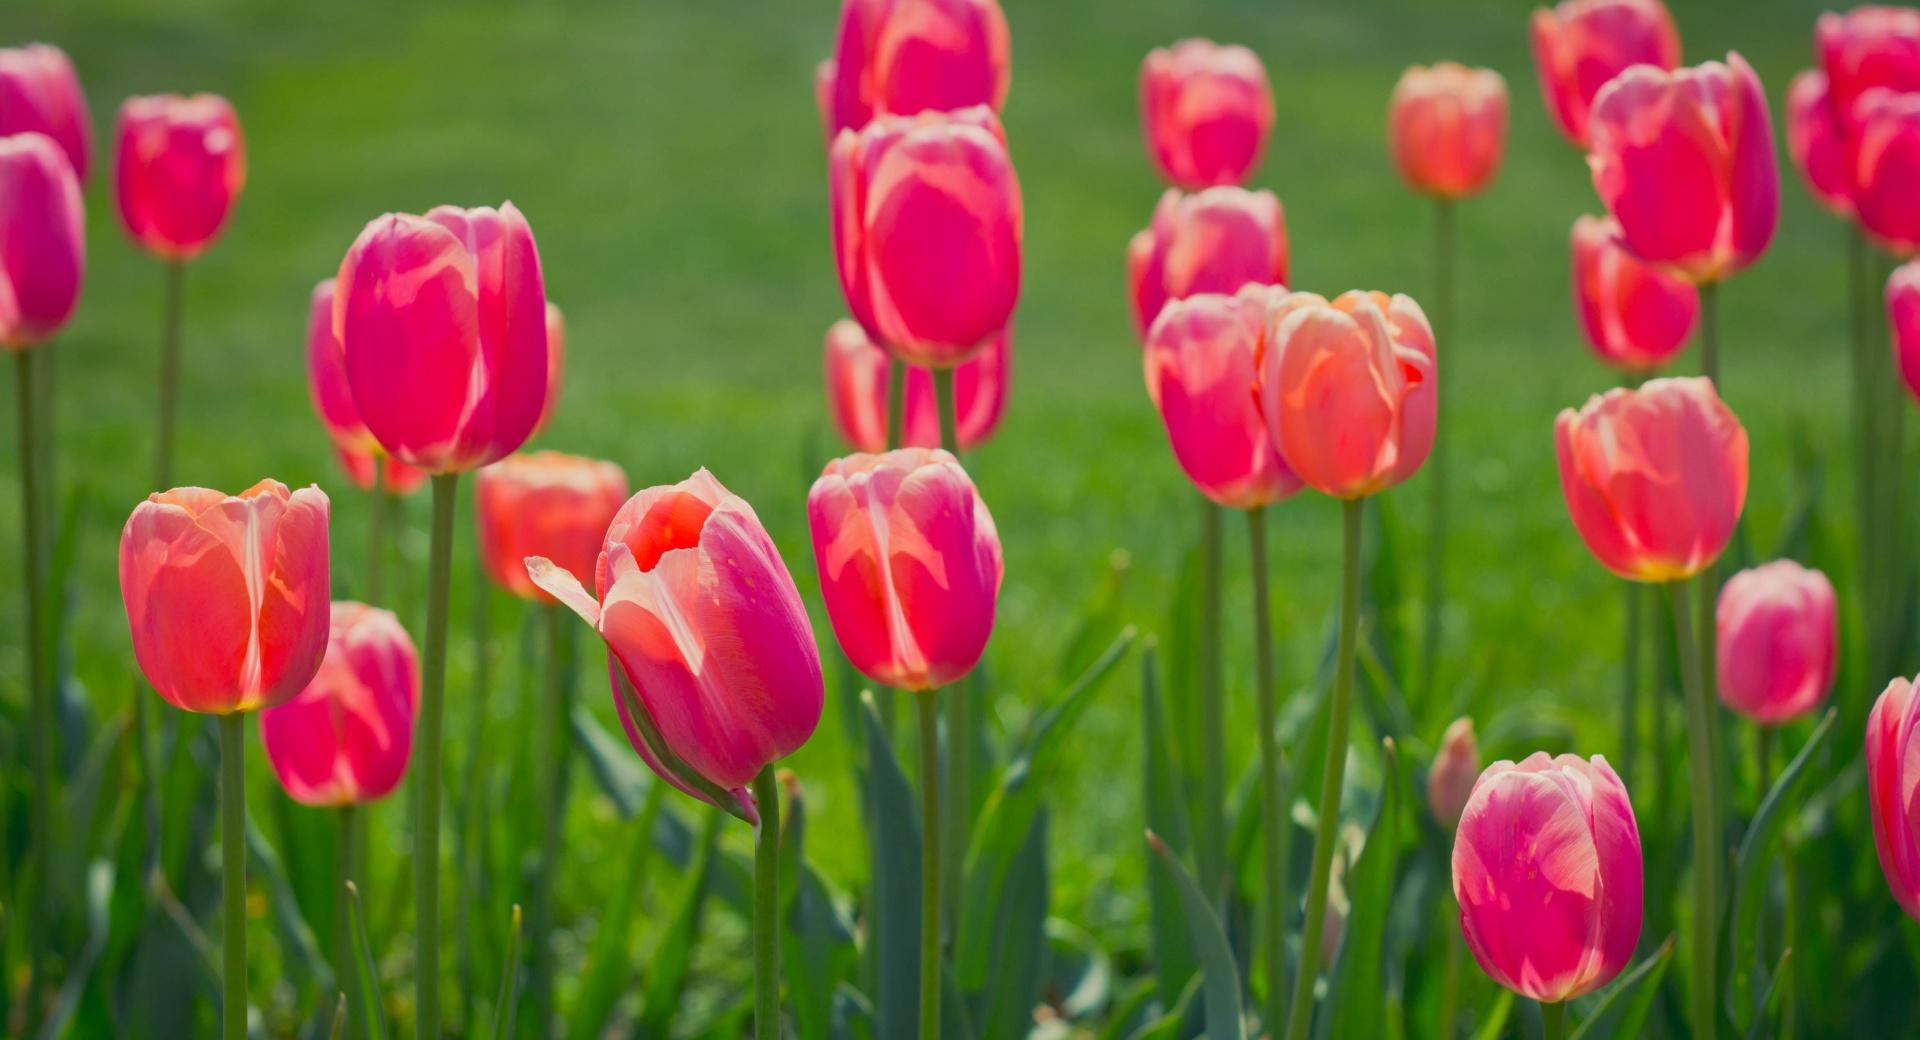 Pretty Tulips Flowers wallpapers HD quality